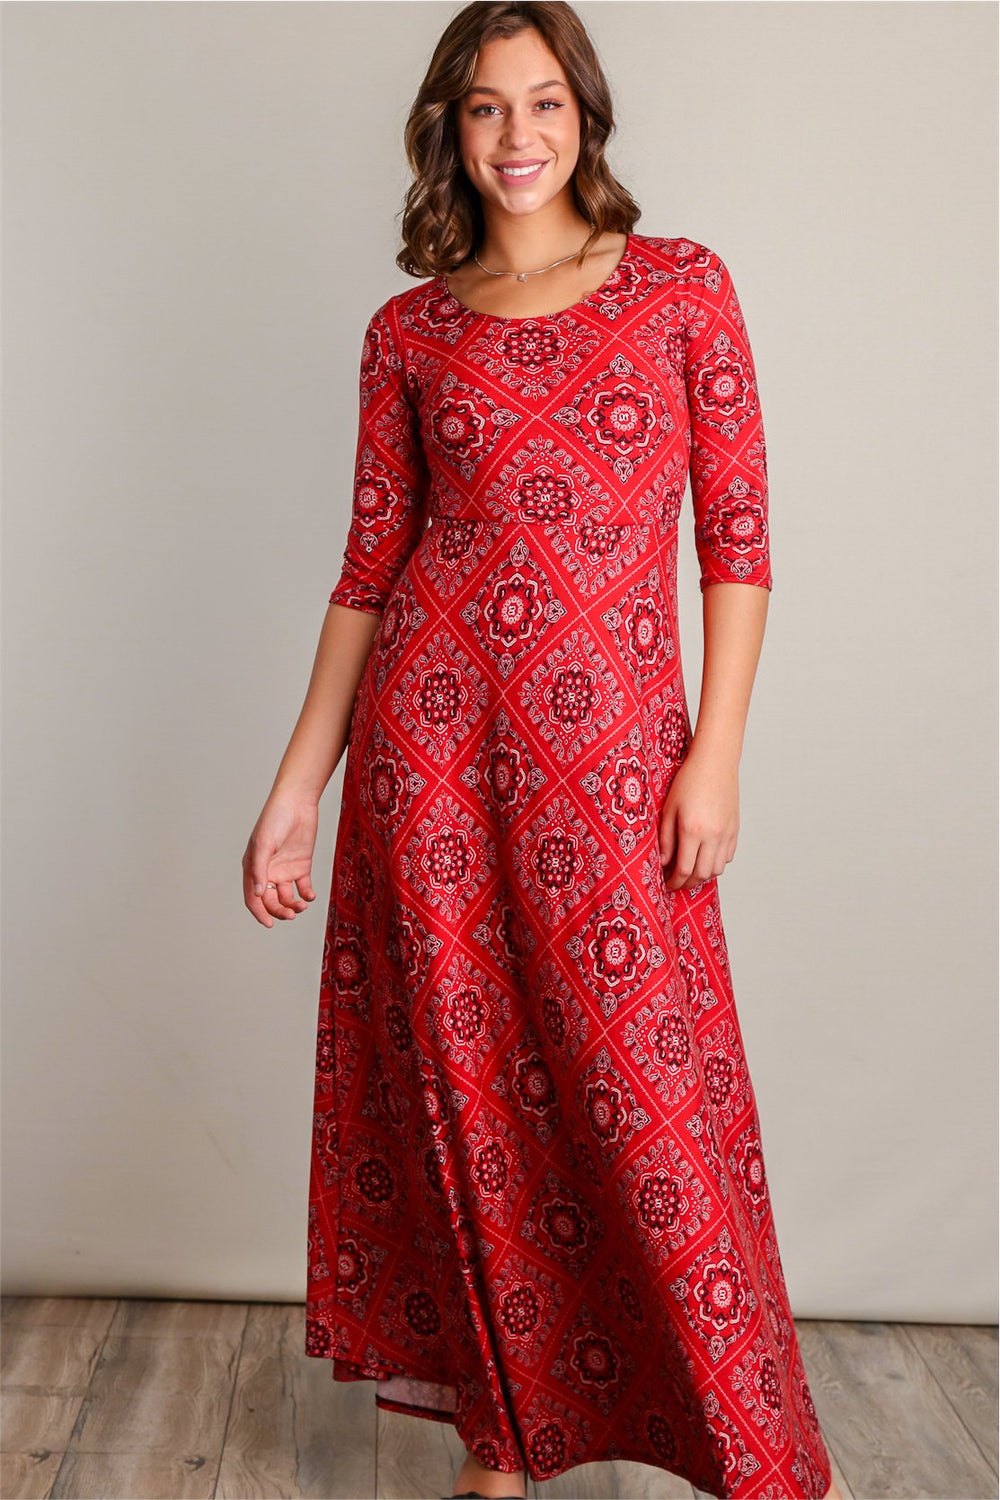 Fiona Rust Red Printed Fit & Flare Maxi Dress - Siin Bees